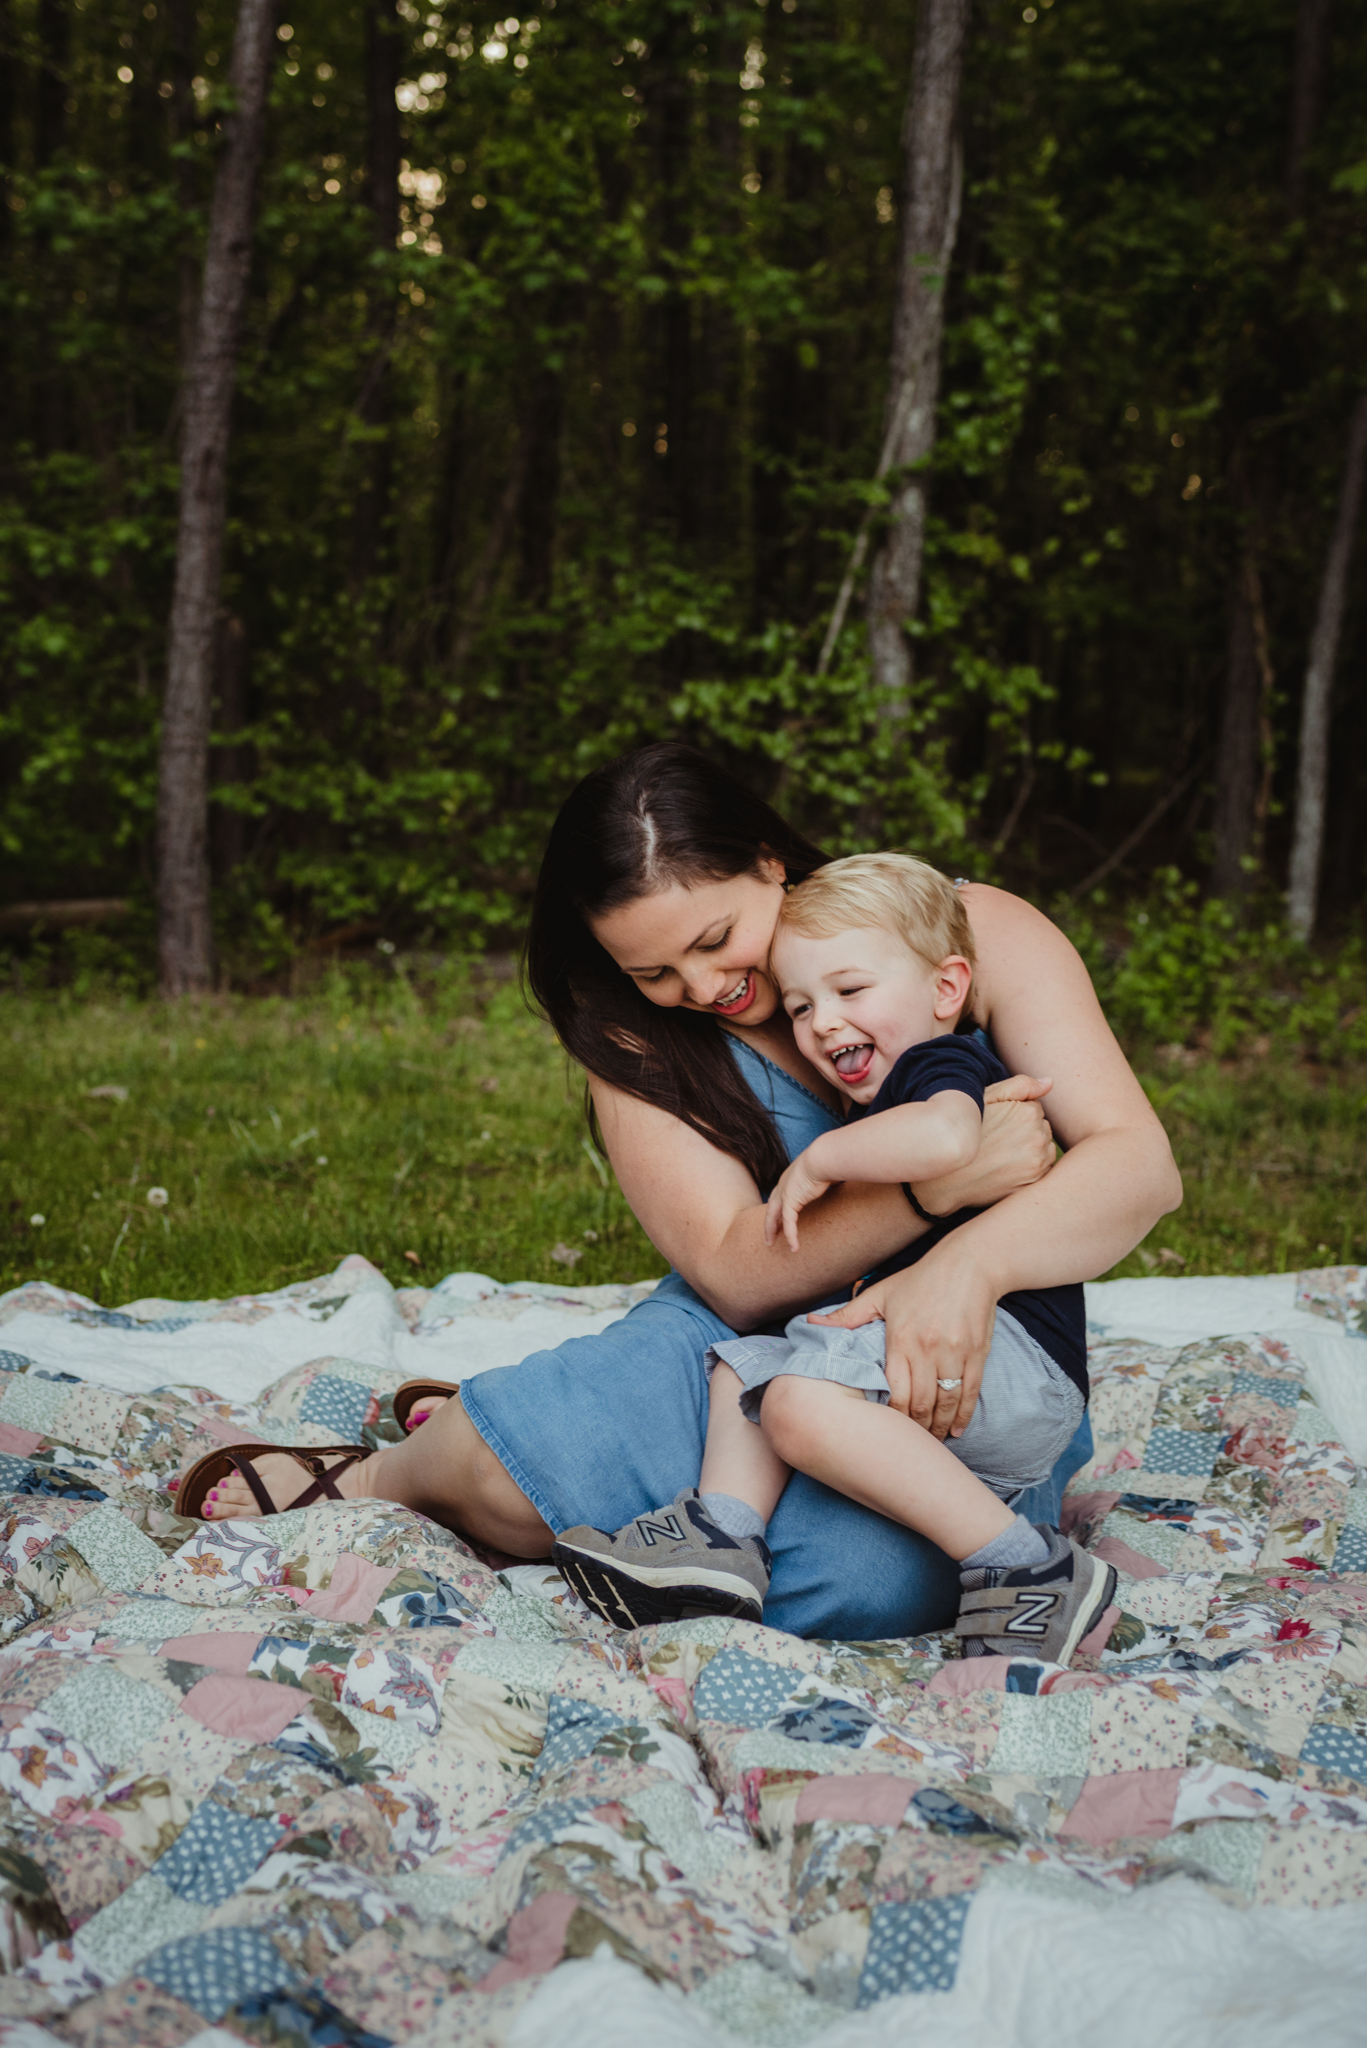 Mommy snuggles with older brother during their family photo session with Rose Trail Images in Rolesville, North Carolina.